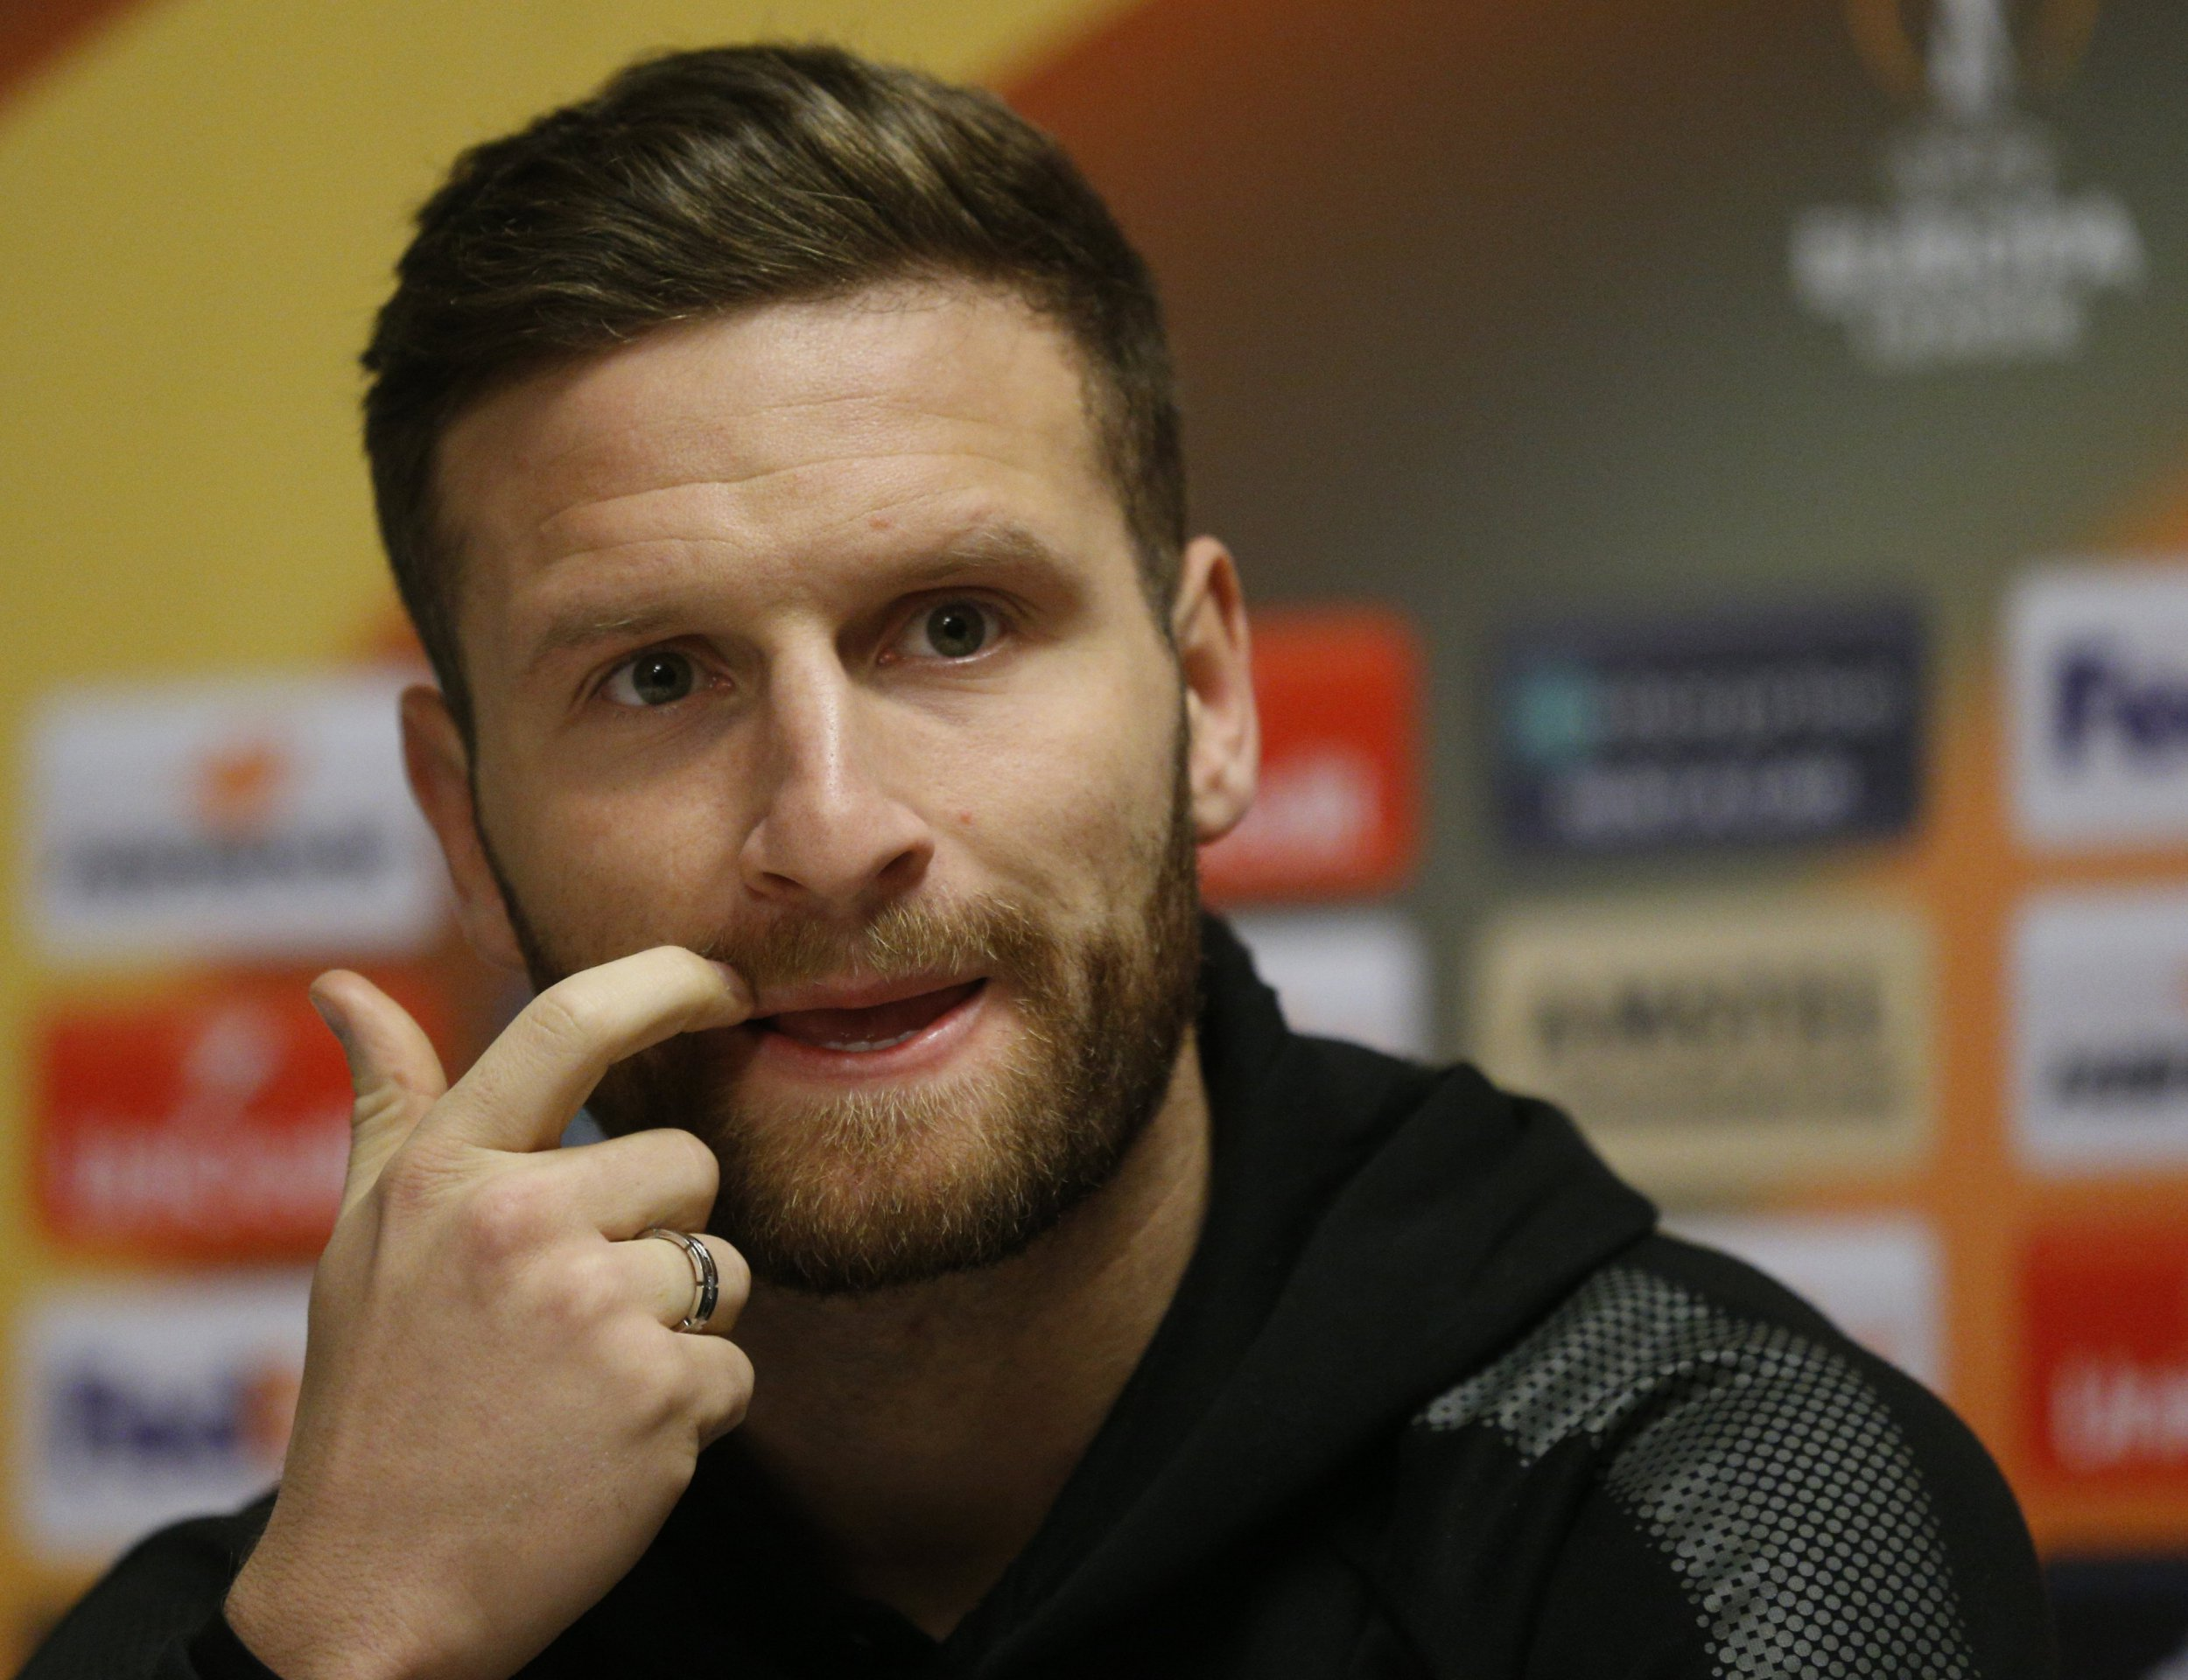 epa06661898 Shkodran Mustafi of Arsenal attends a press conference at Sheraton Shremetyevo hotel upon the team's arrival for a second leg match against CSKA in Moscow, Russia, 11 April 2018. EPA/SERGEI CHIRIKOV